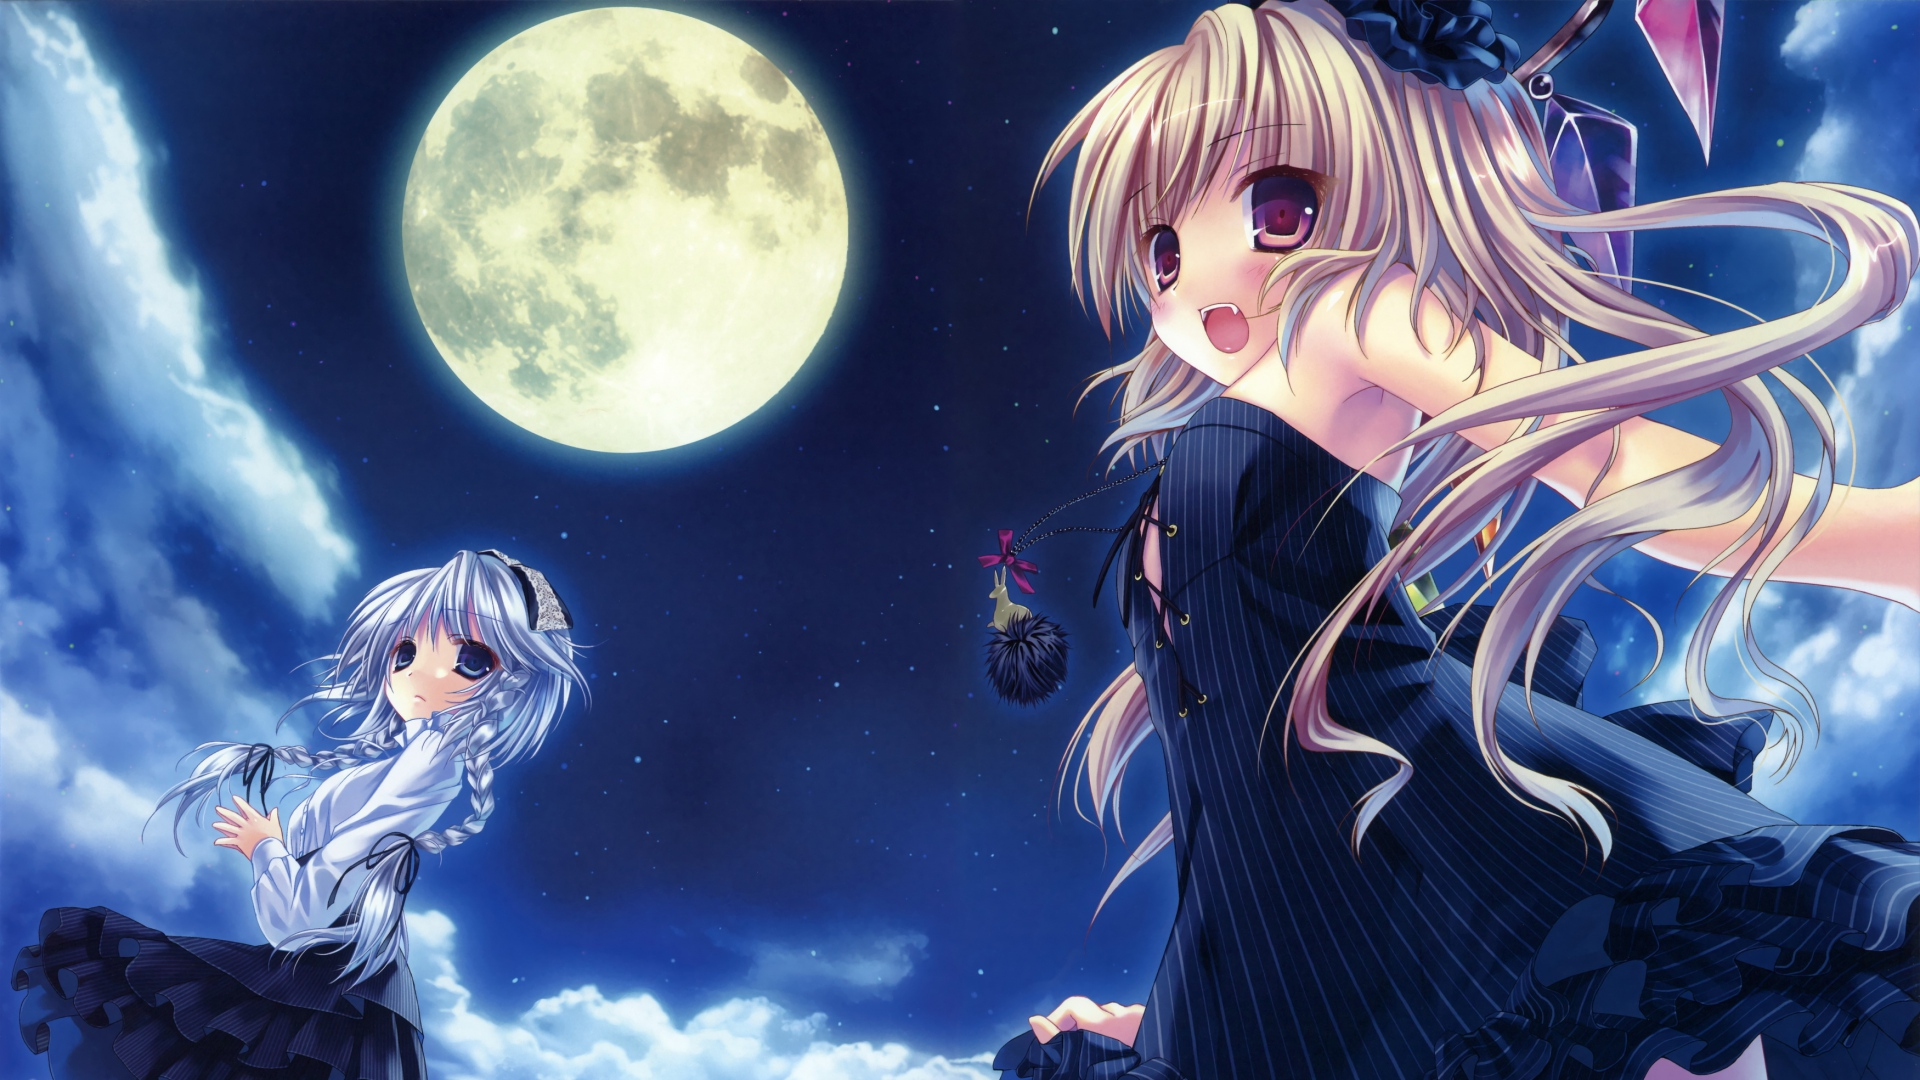 full moon anime wallpaper wallpapersafari